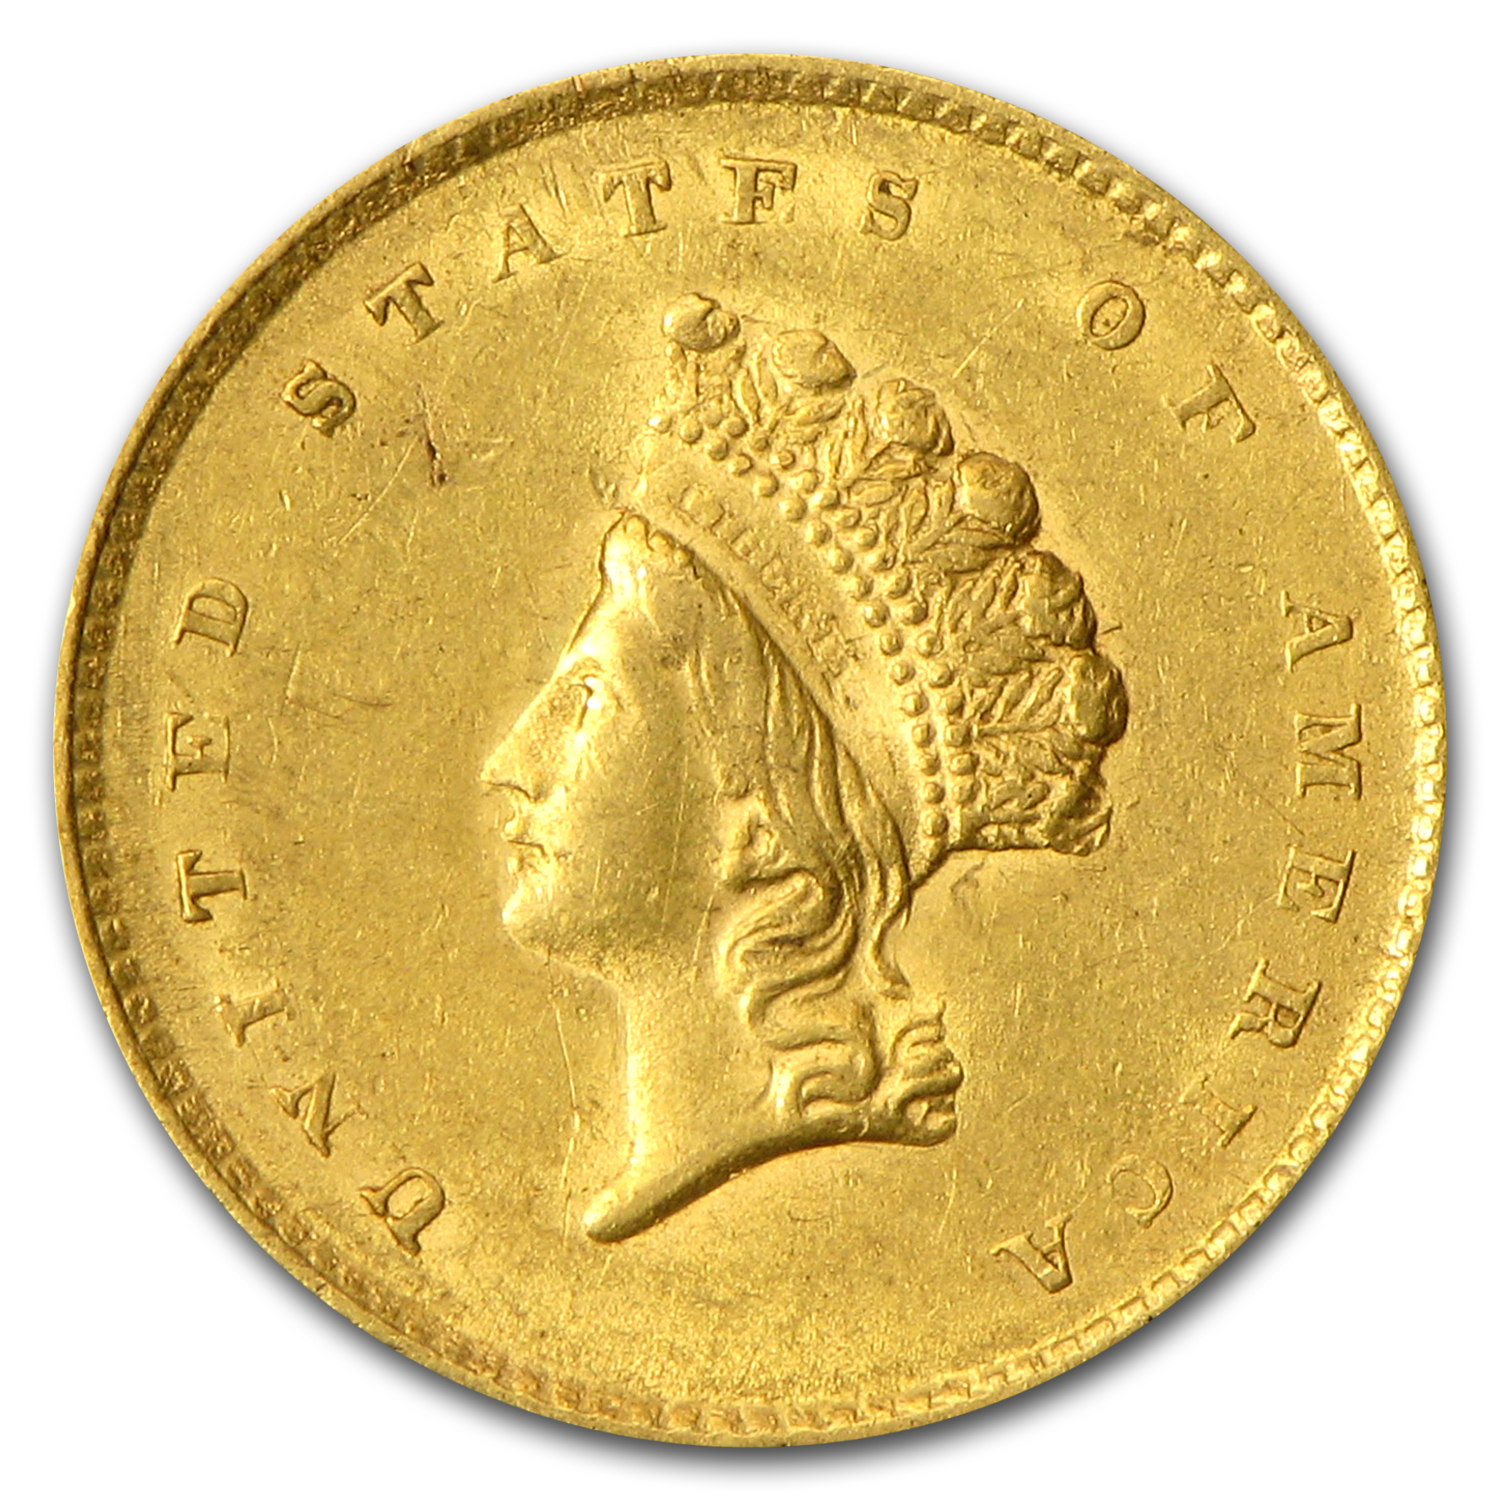 $1 Indian Head Gold - Type 2 - Almost Uncirculated